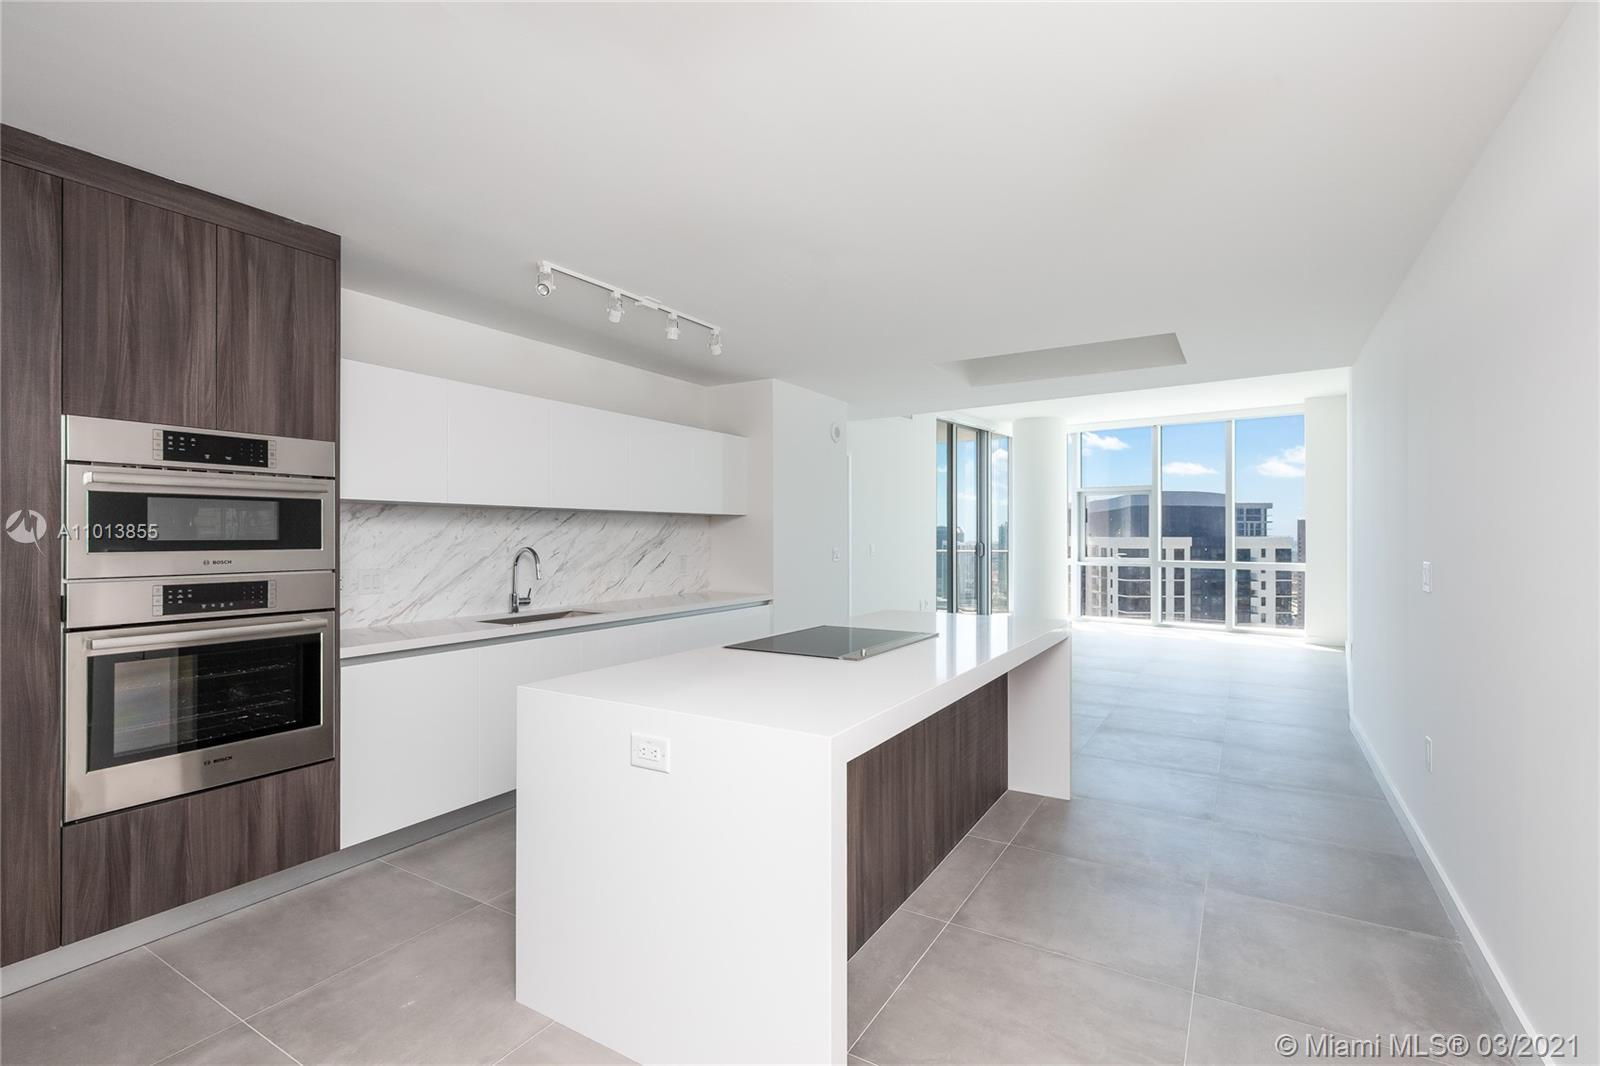 Stunning 3 Bedroom plus Den / 4 baths with Panoramic city and bay views, Italian cabinetry, Bosch an